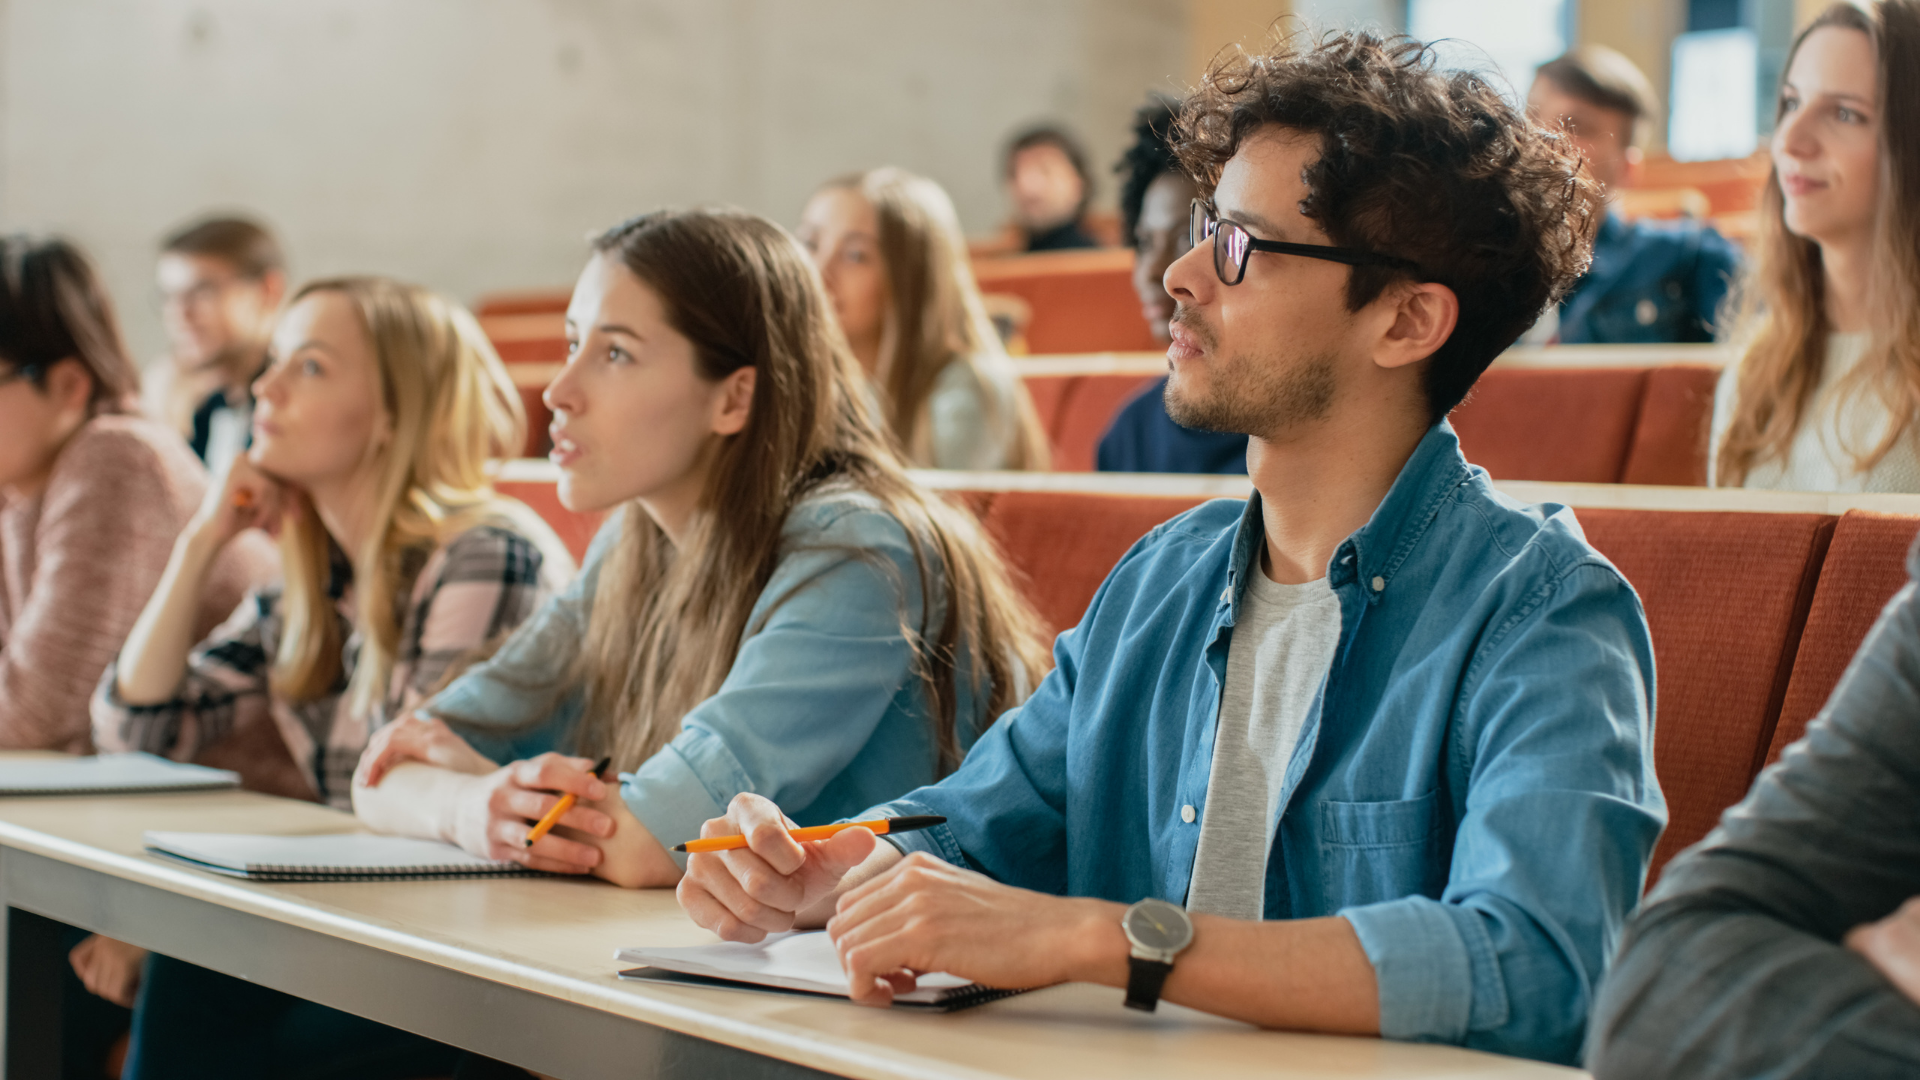 A Male and Female College Student Attend A Lecture With Other Students